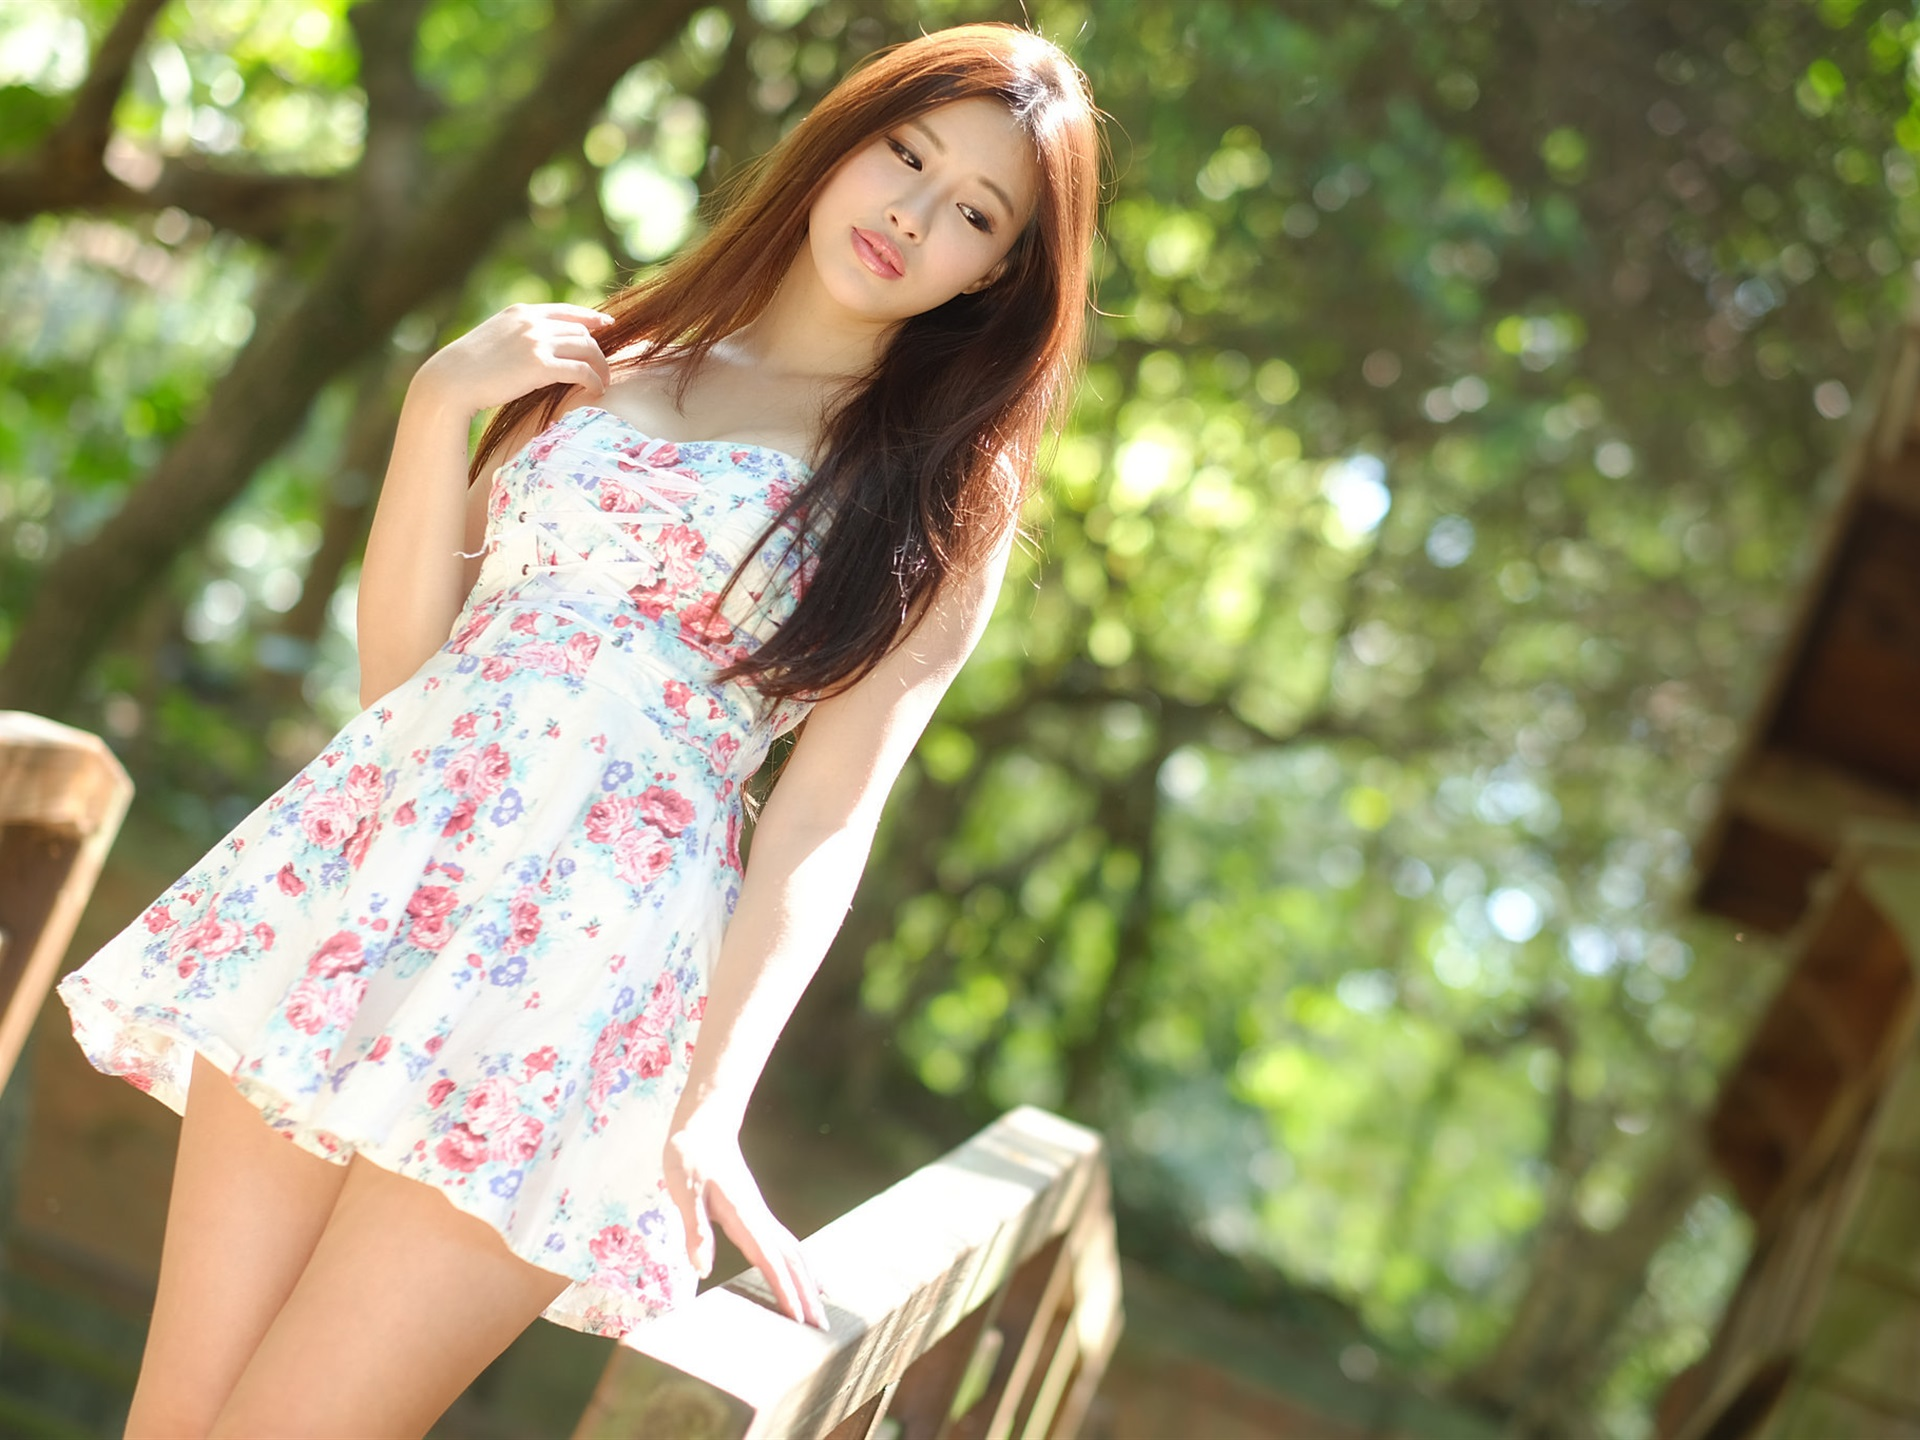 Wallpaper Summer Asian Girl Short Skirt Sunlight Bokeh 1920x1440